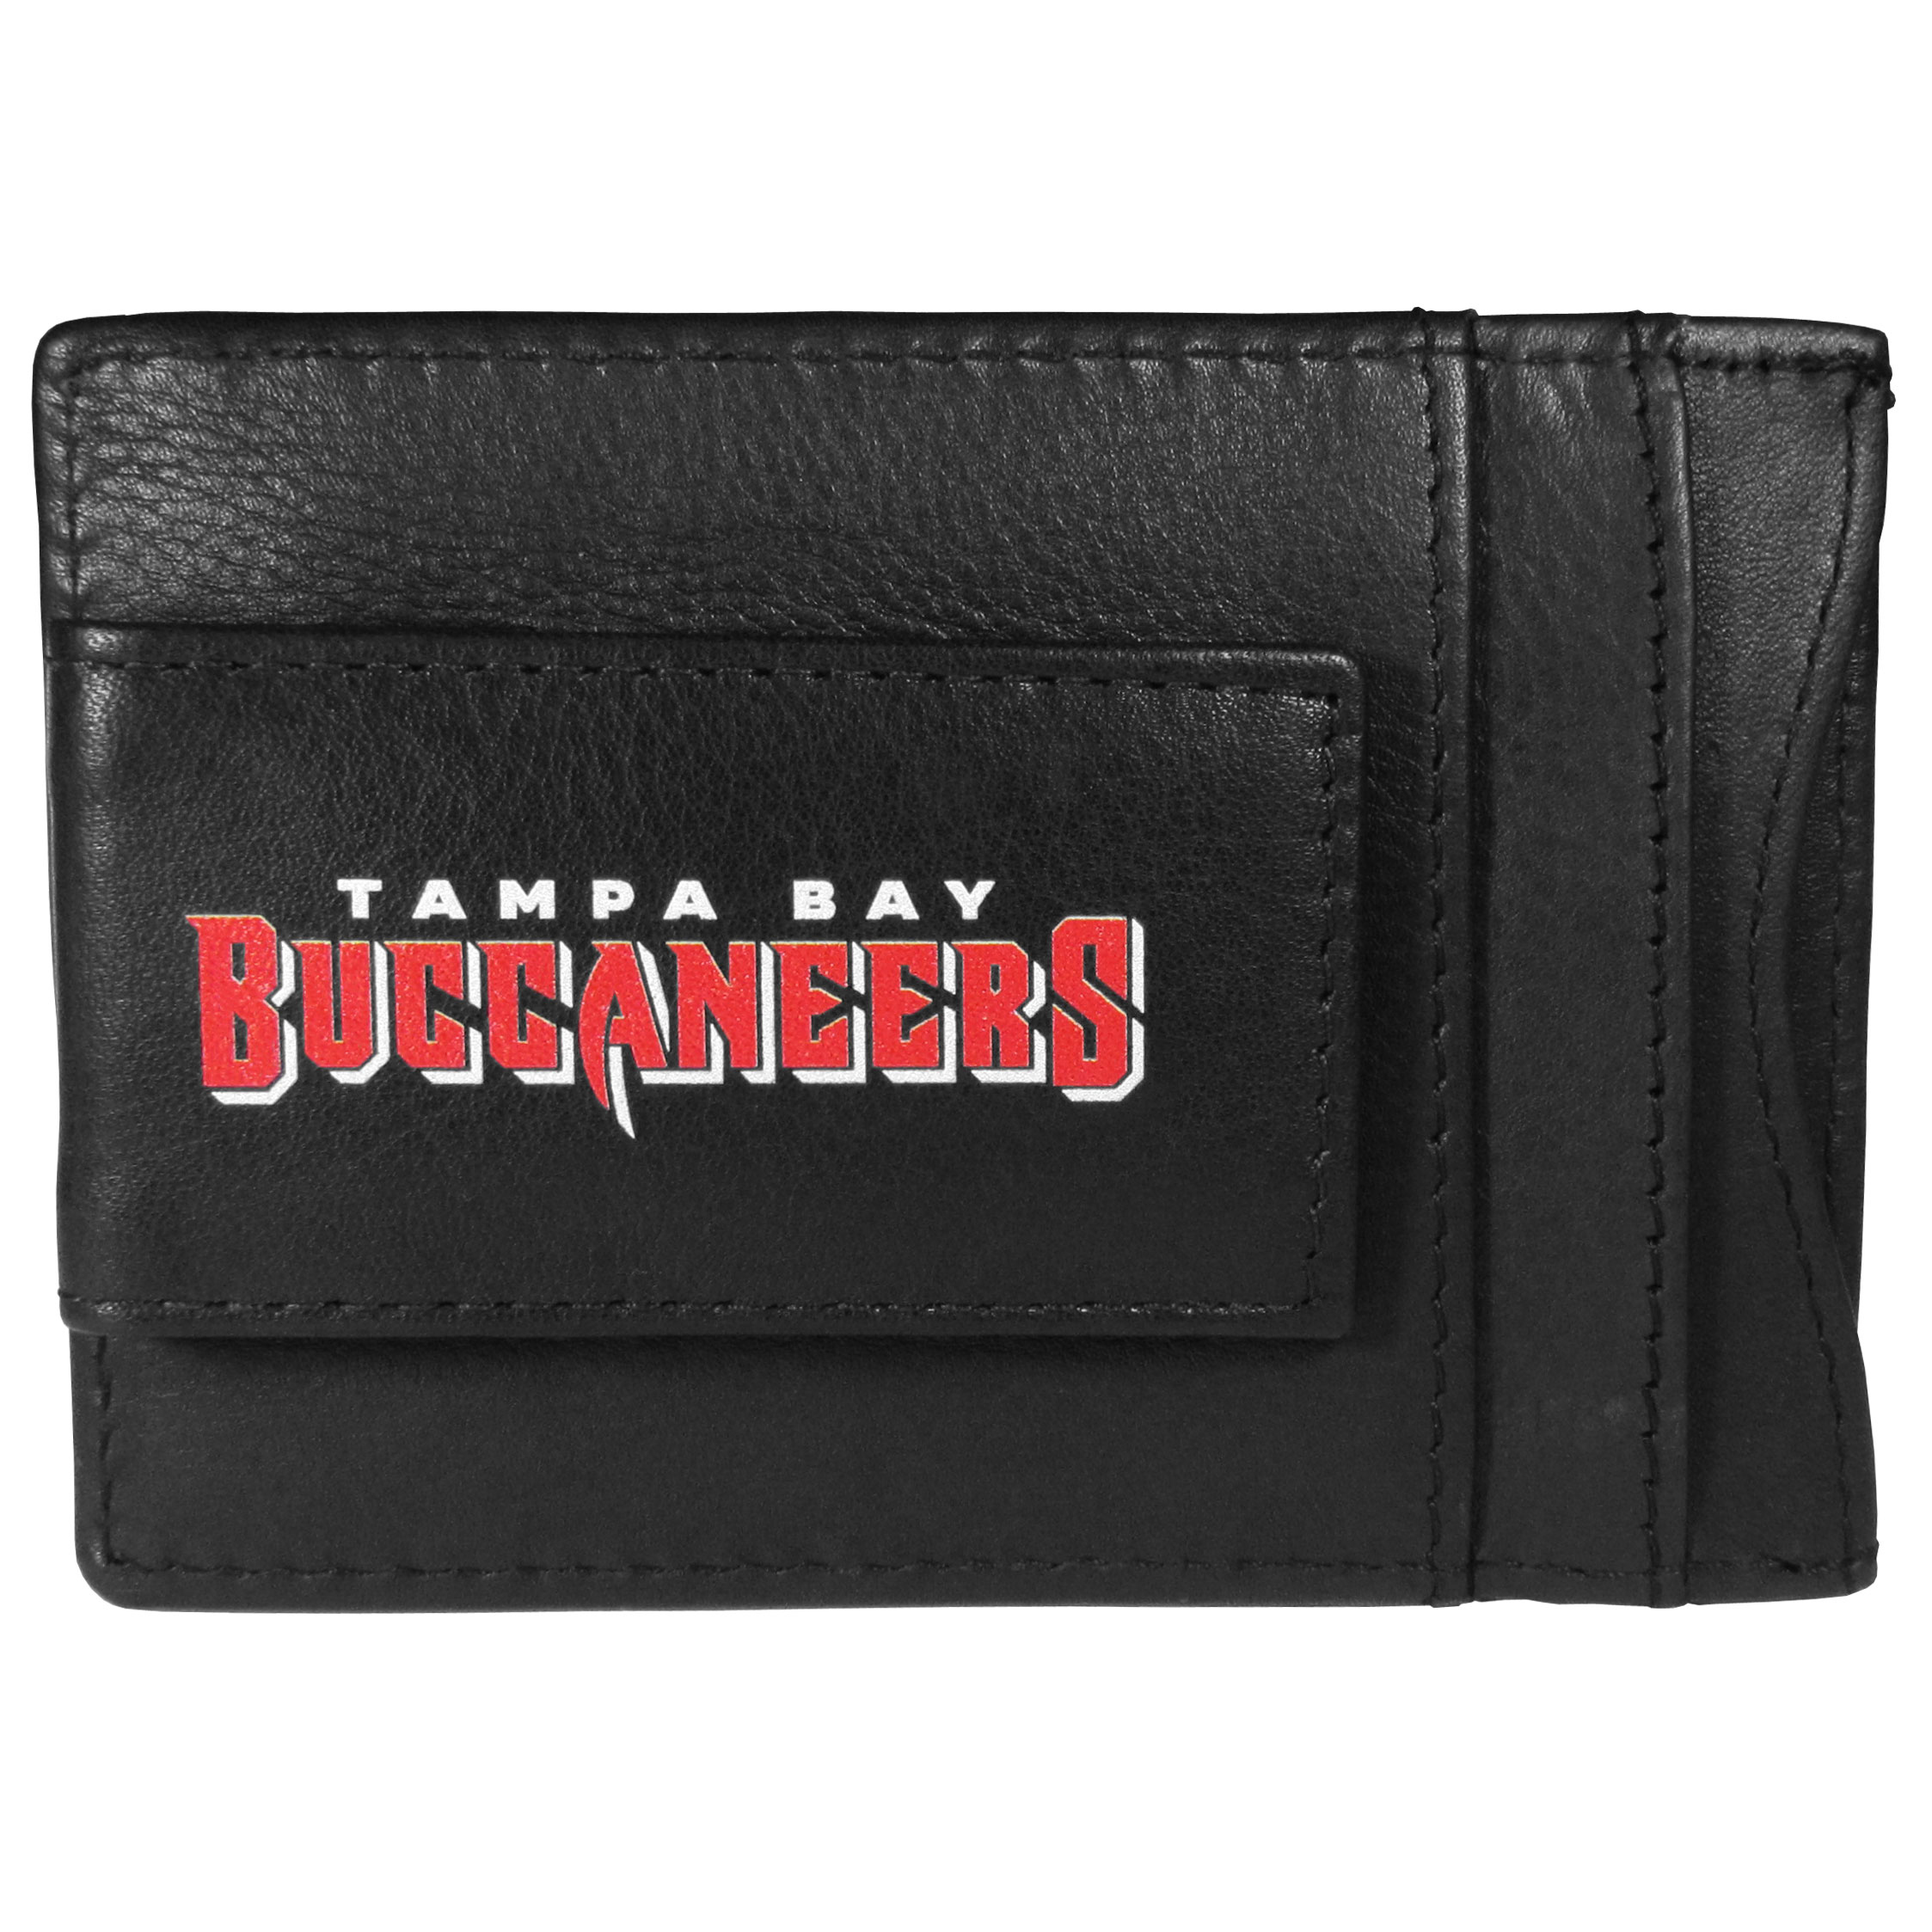 Tampa Bay Buccaneers Logo Leather Cash and Cardholder - This super slim leather wallet lets you have all the benefits of a money clip while keeping the organization of a wallet. On one side of this front pocket wallet there is a strong, magnetic money clip to keep your cash easily accessible and the?Tampa Bay Buccaneers team logo on the front. The versatile men's accessory is a perfect addition to your fan apparel.